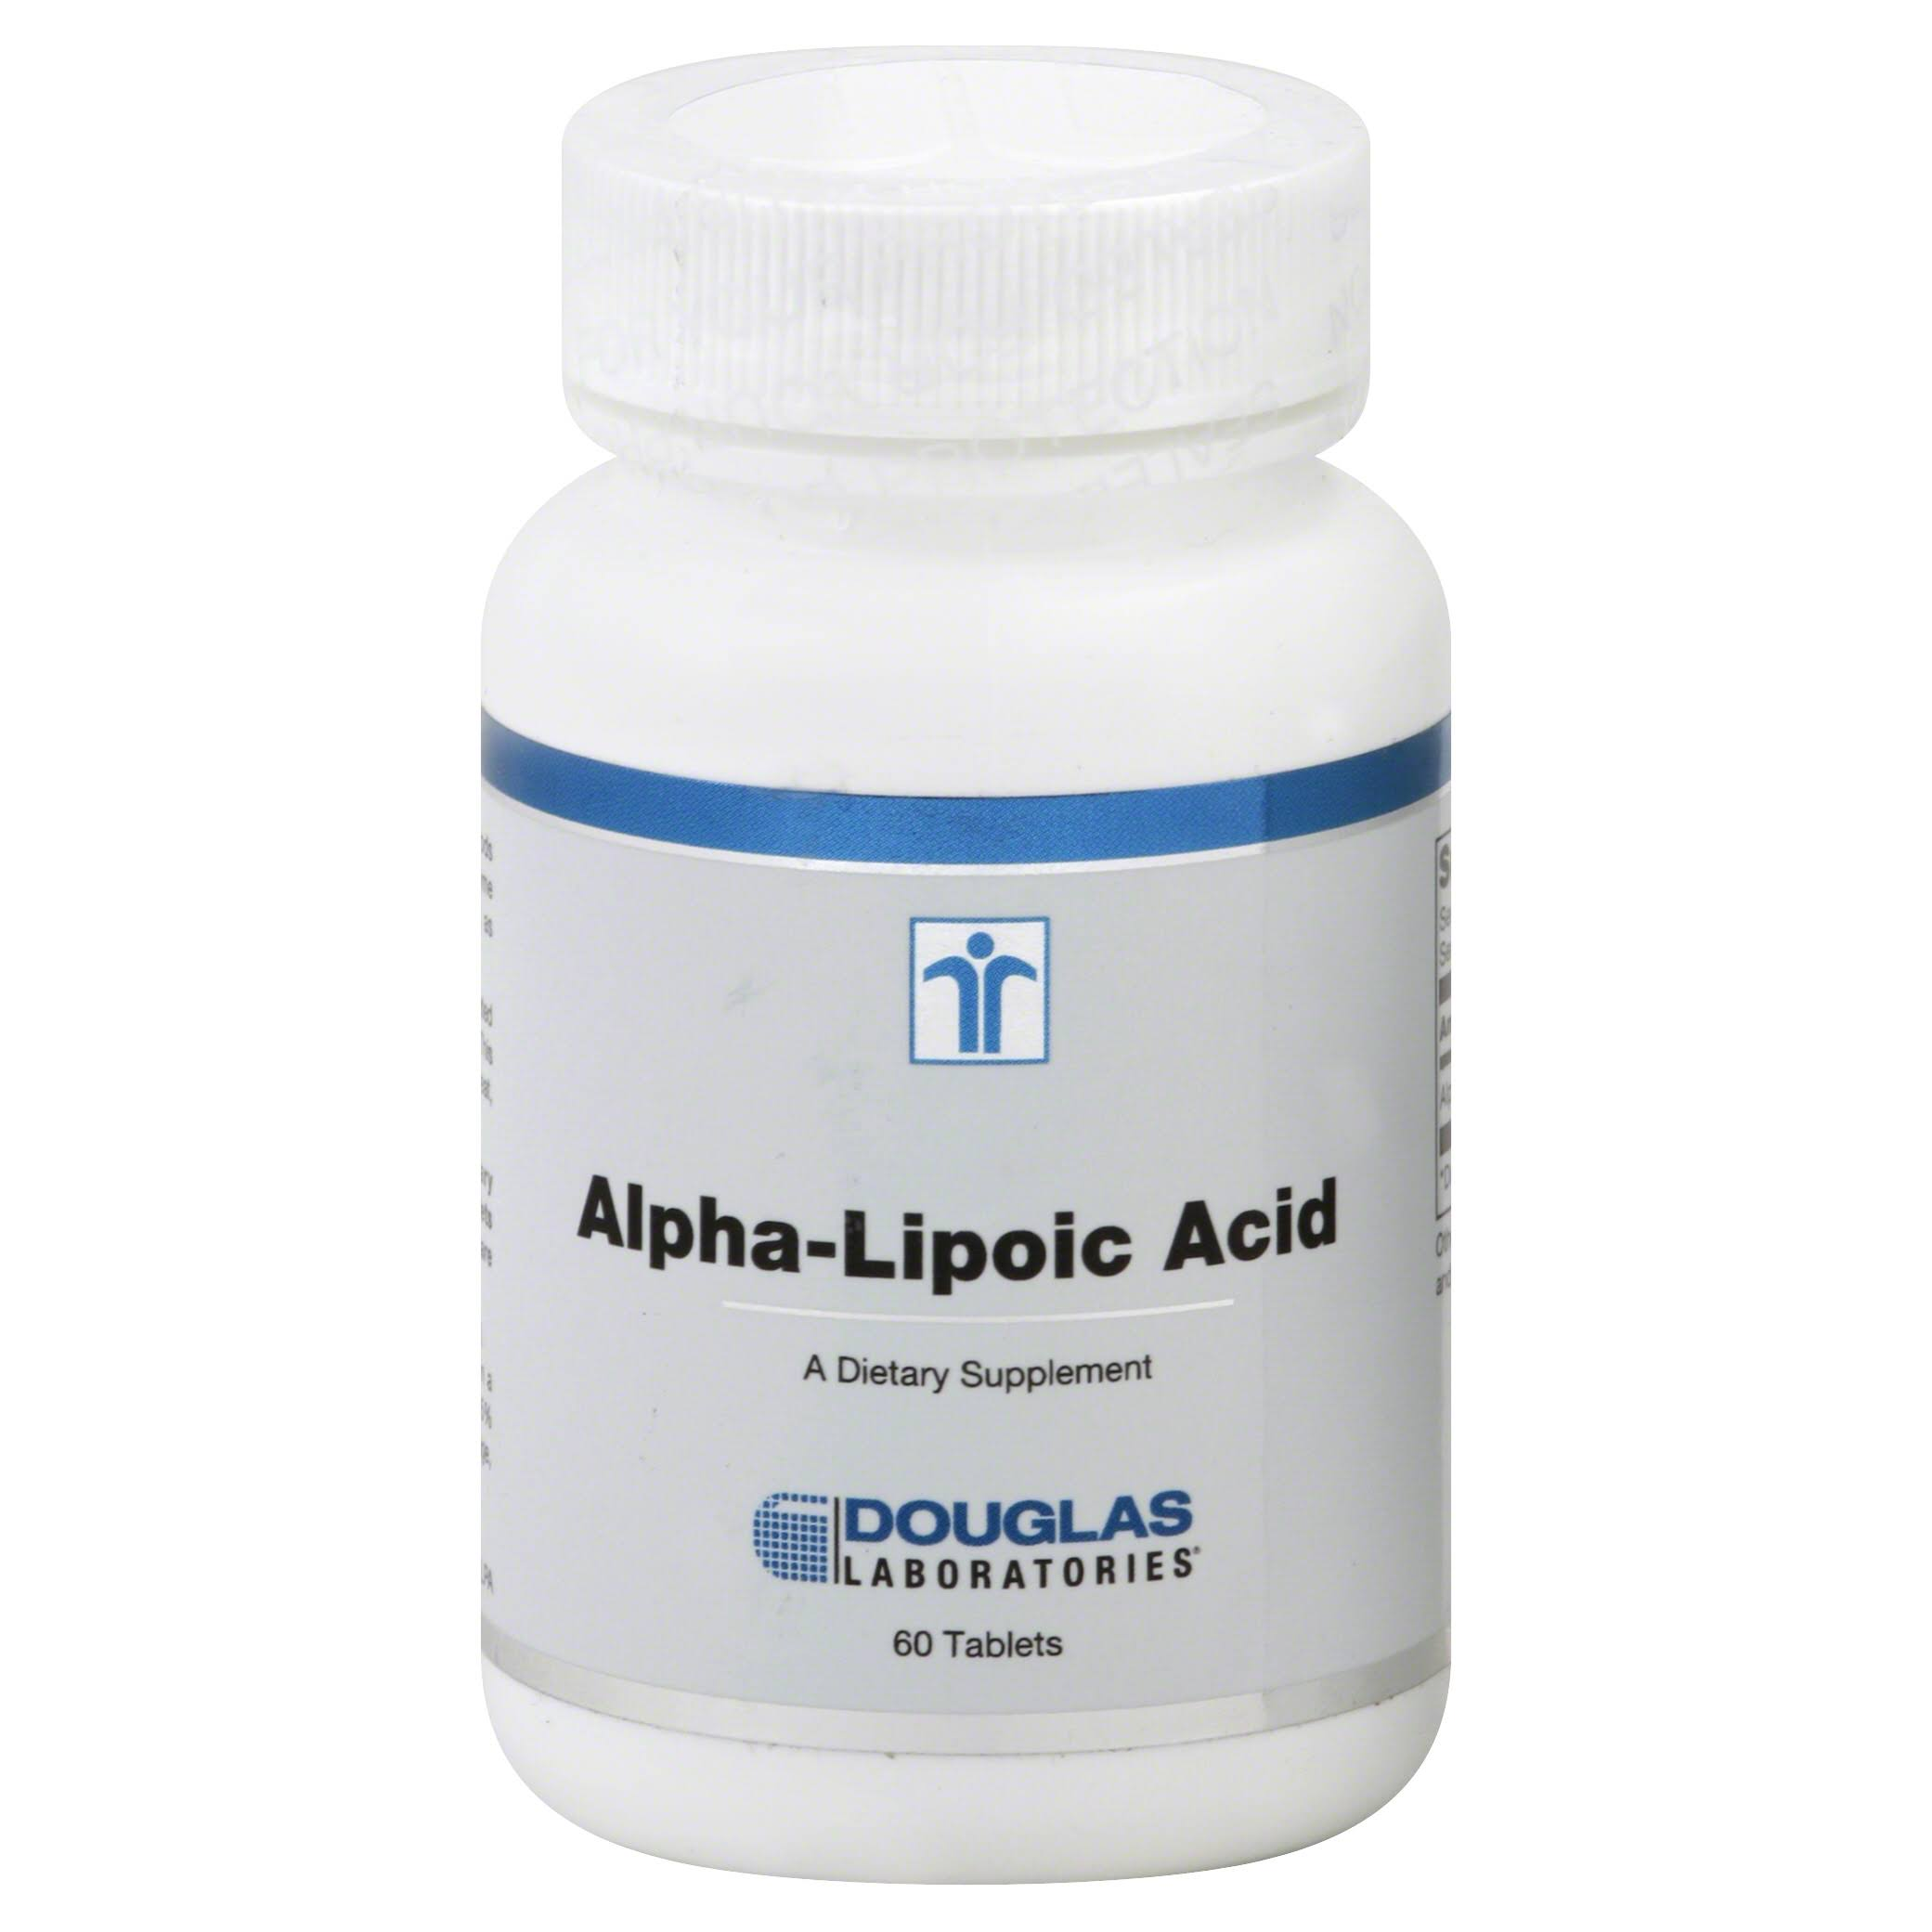 Douglas Laboratories Alpha-Lipoic Acid Tablets - x60